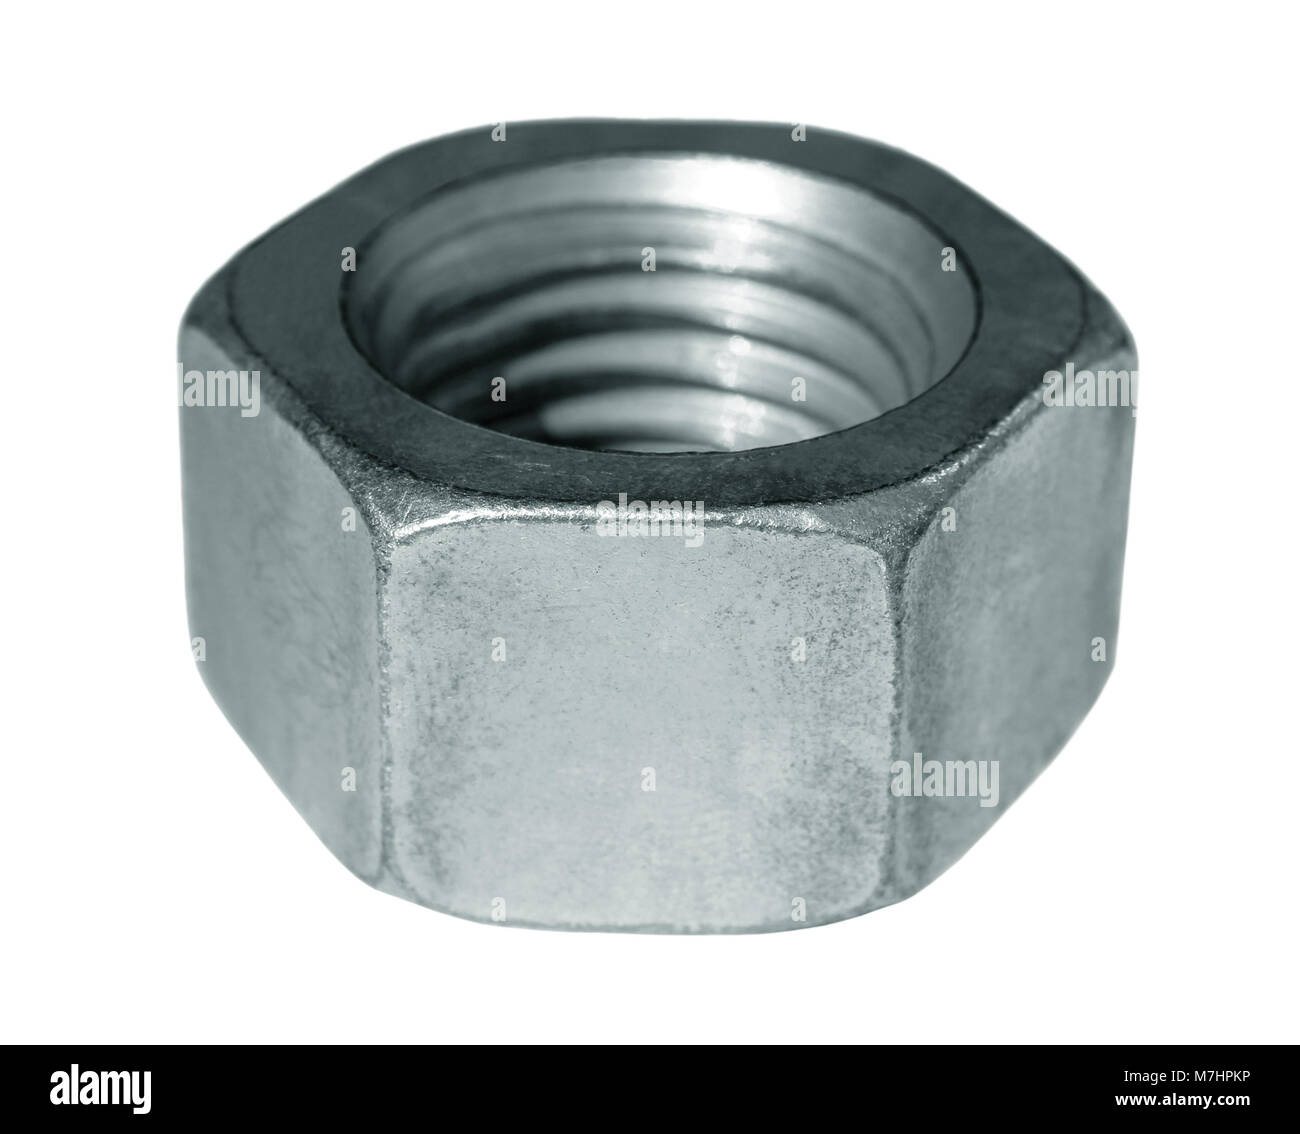 Steel nut with metric threads on a white background. - Stock Image